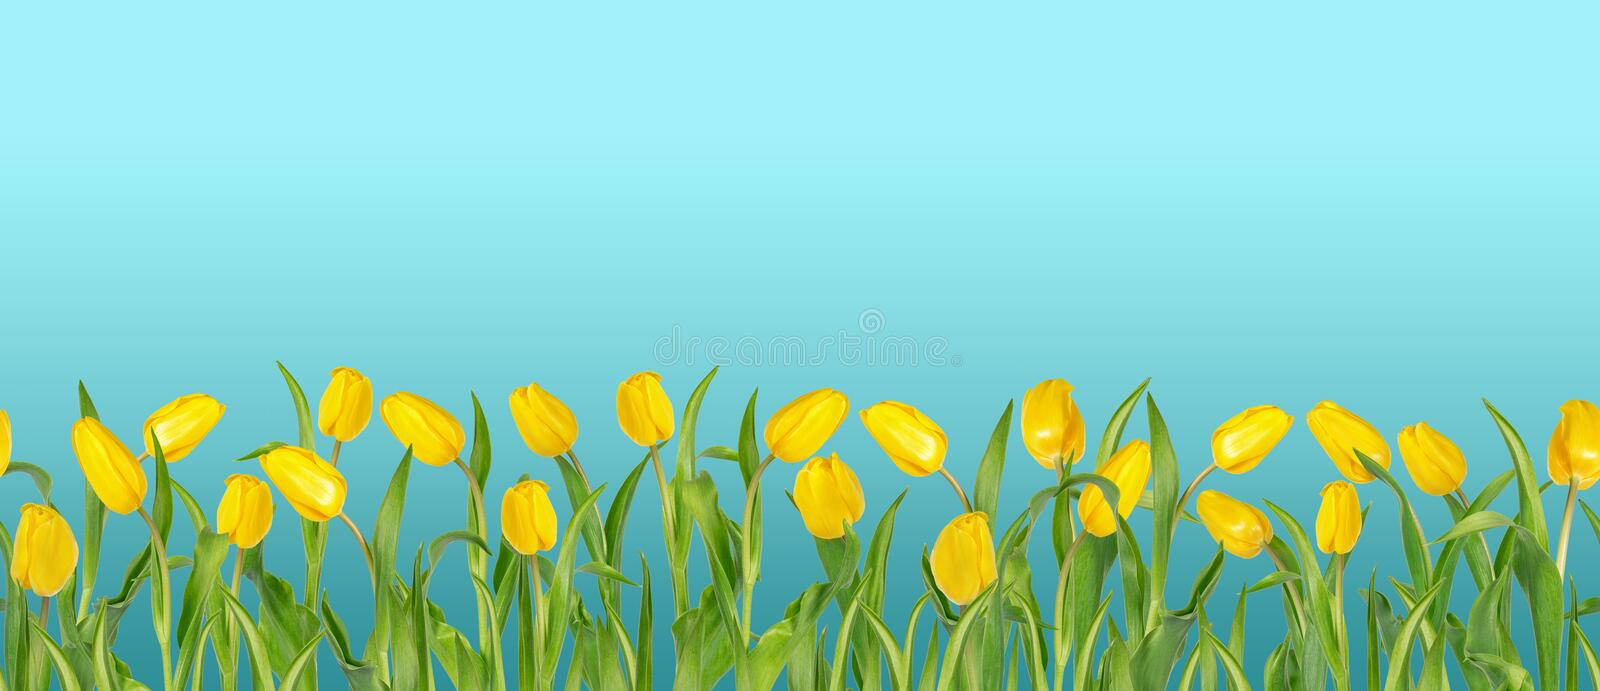 Beautiful vivid yellow tulips on long stems with green leaves arranged in seamless row. Blue sky background. Bright spring flowers. Can be used as a banner or stock images